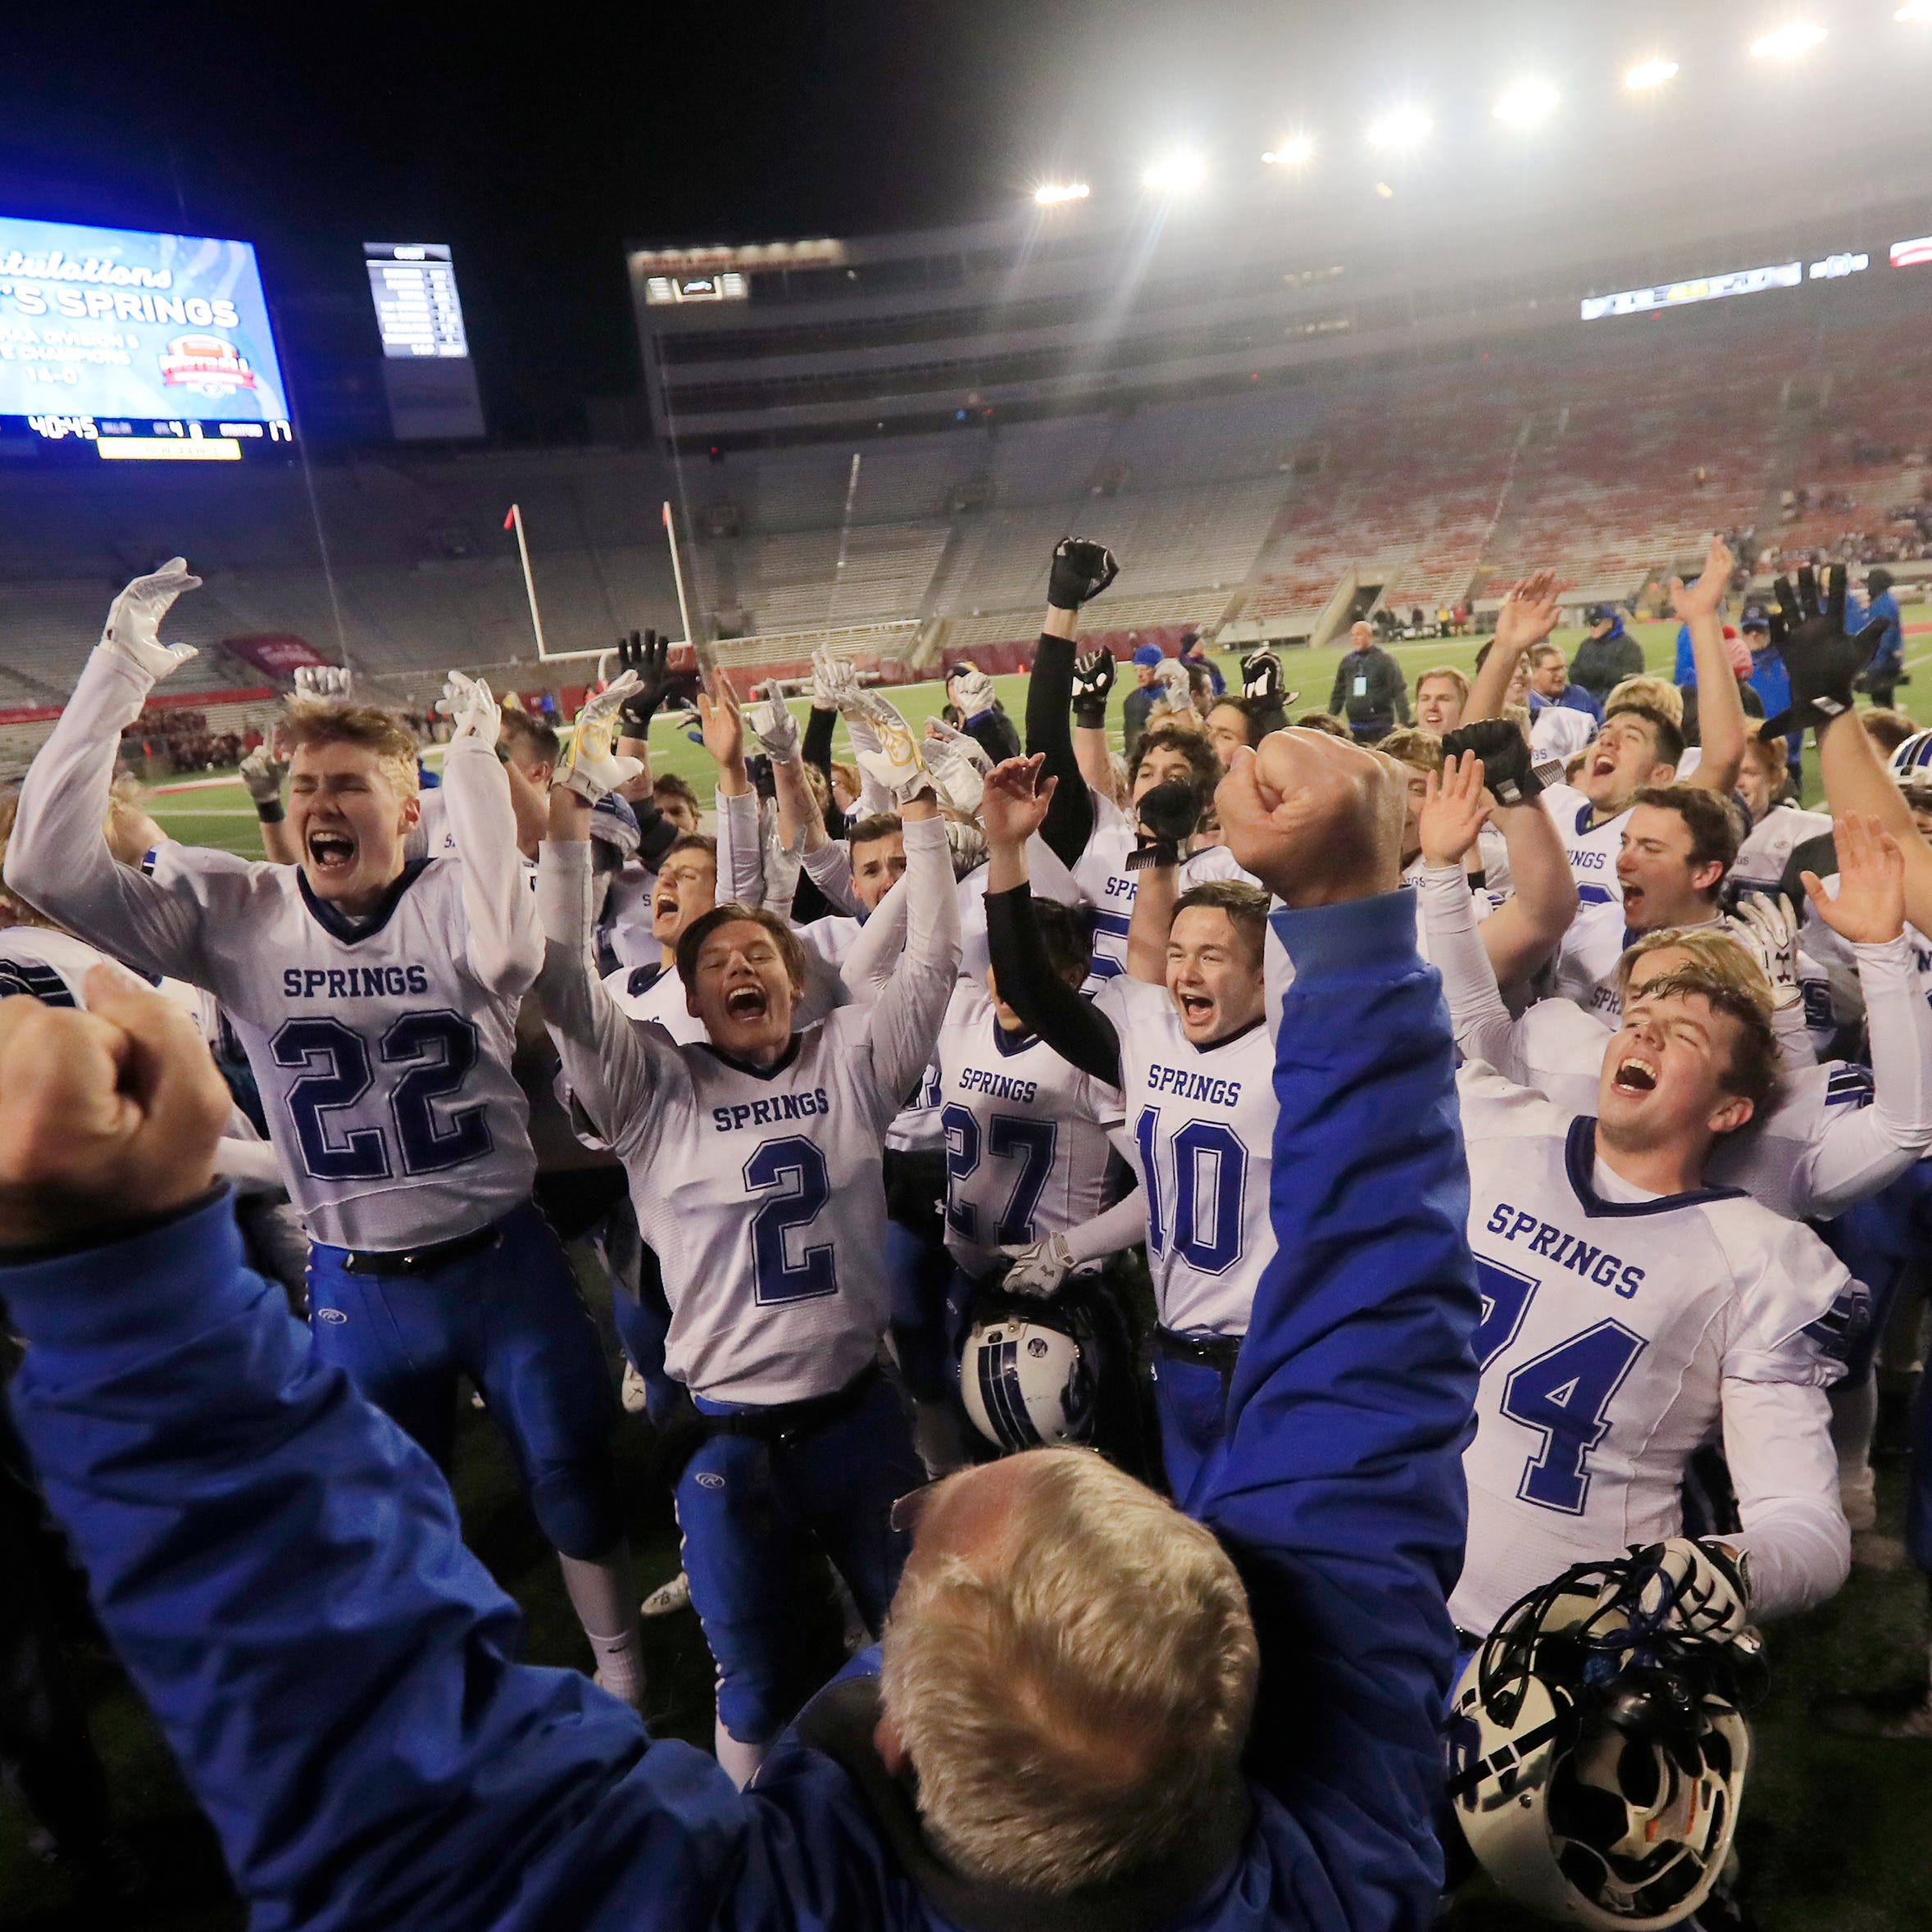 WIAA state football: St. Mary's Springs rallies to win record eighth title